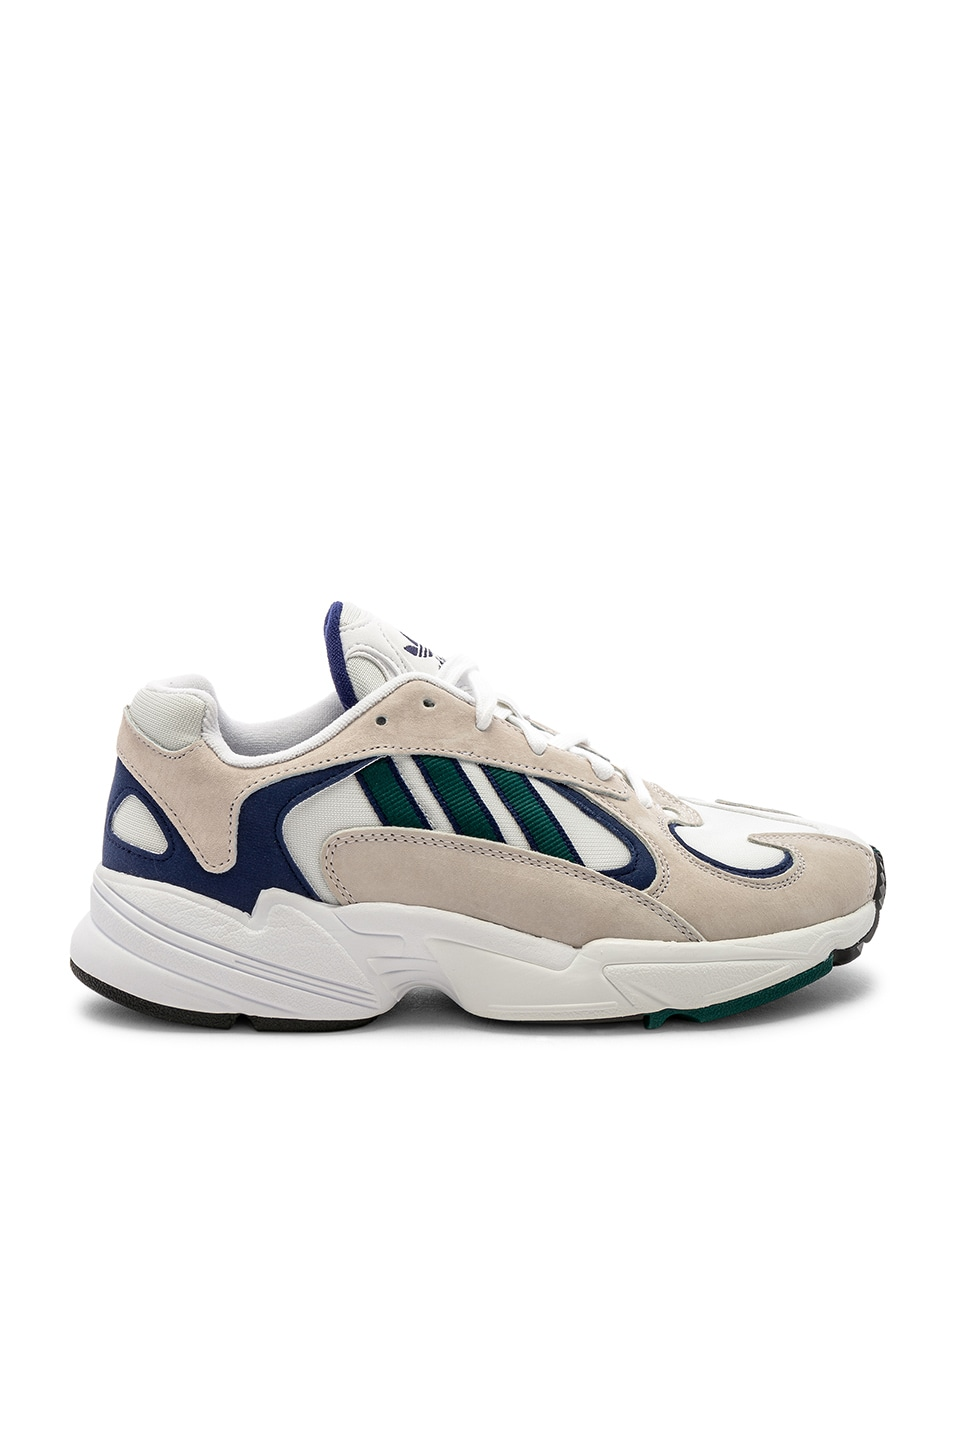 Image 1 of adidas Originals Yung-1 in White & Noble Green & Dark Blue